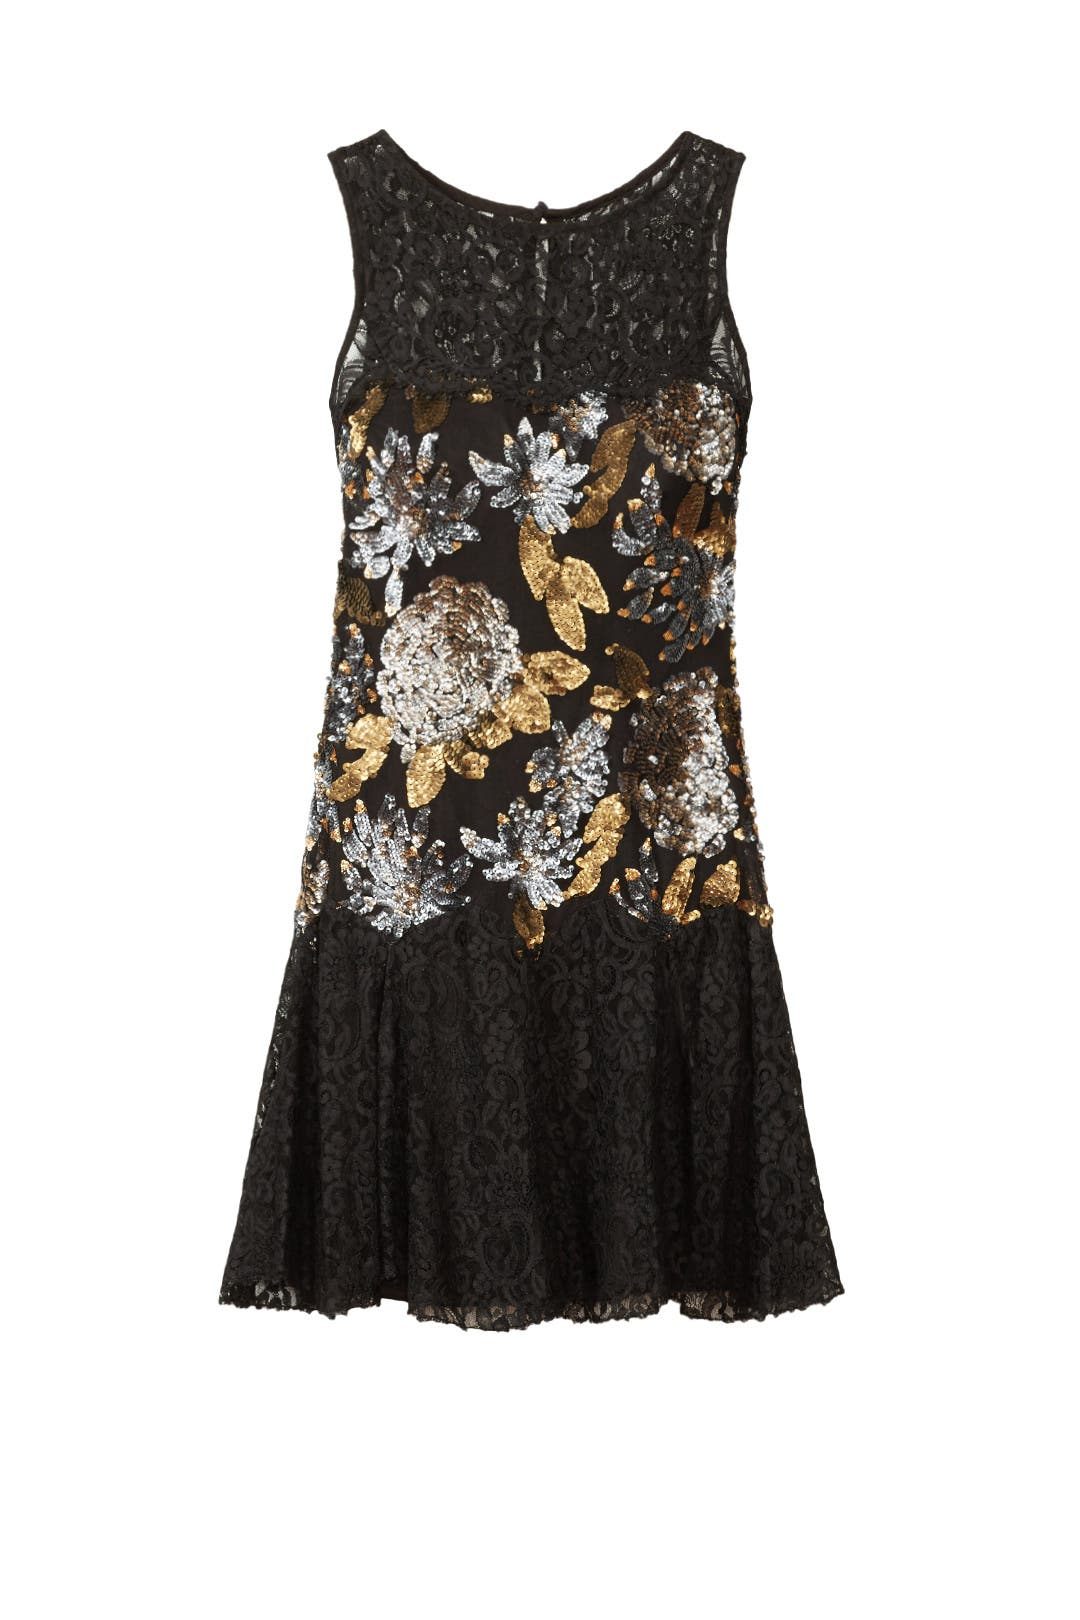 Like To Party Dress by Nicole Miller for $35  Rent the Runway